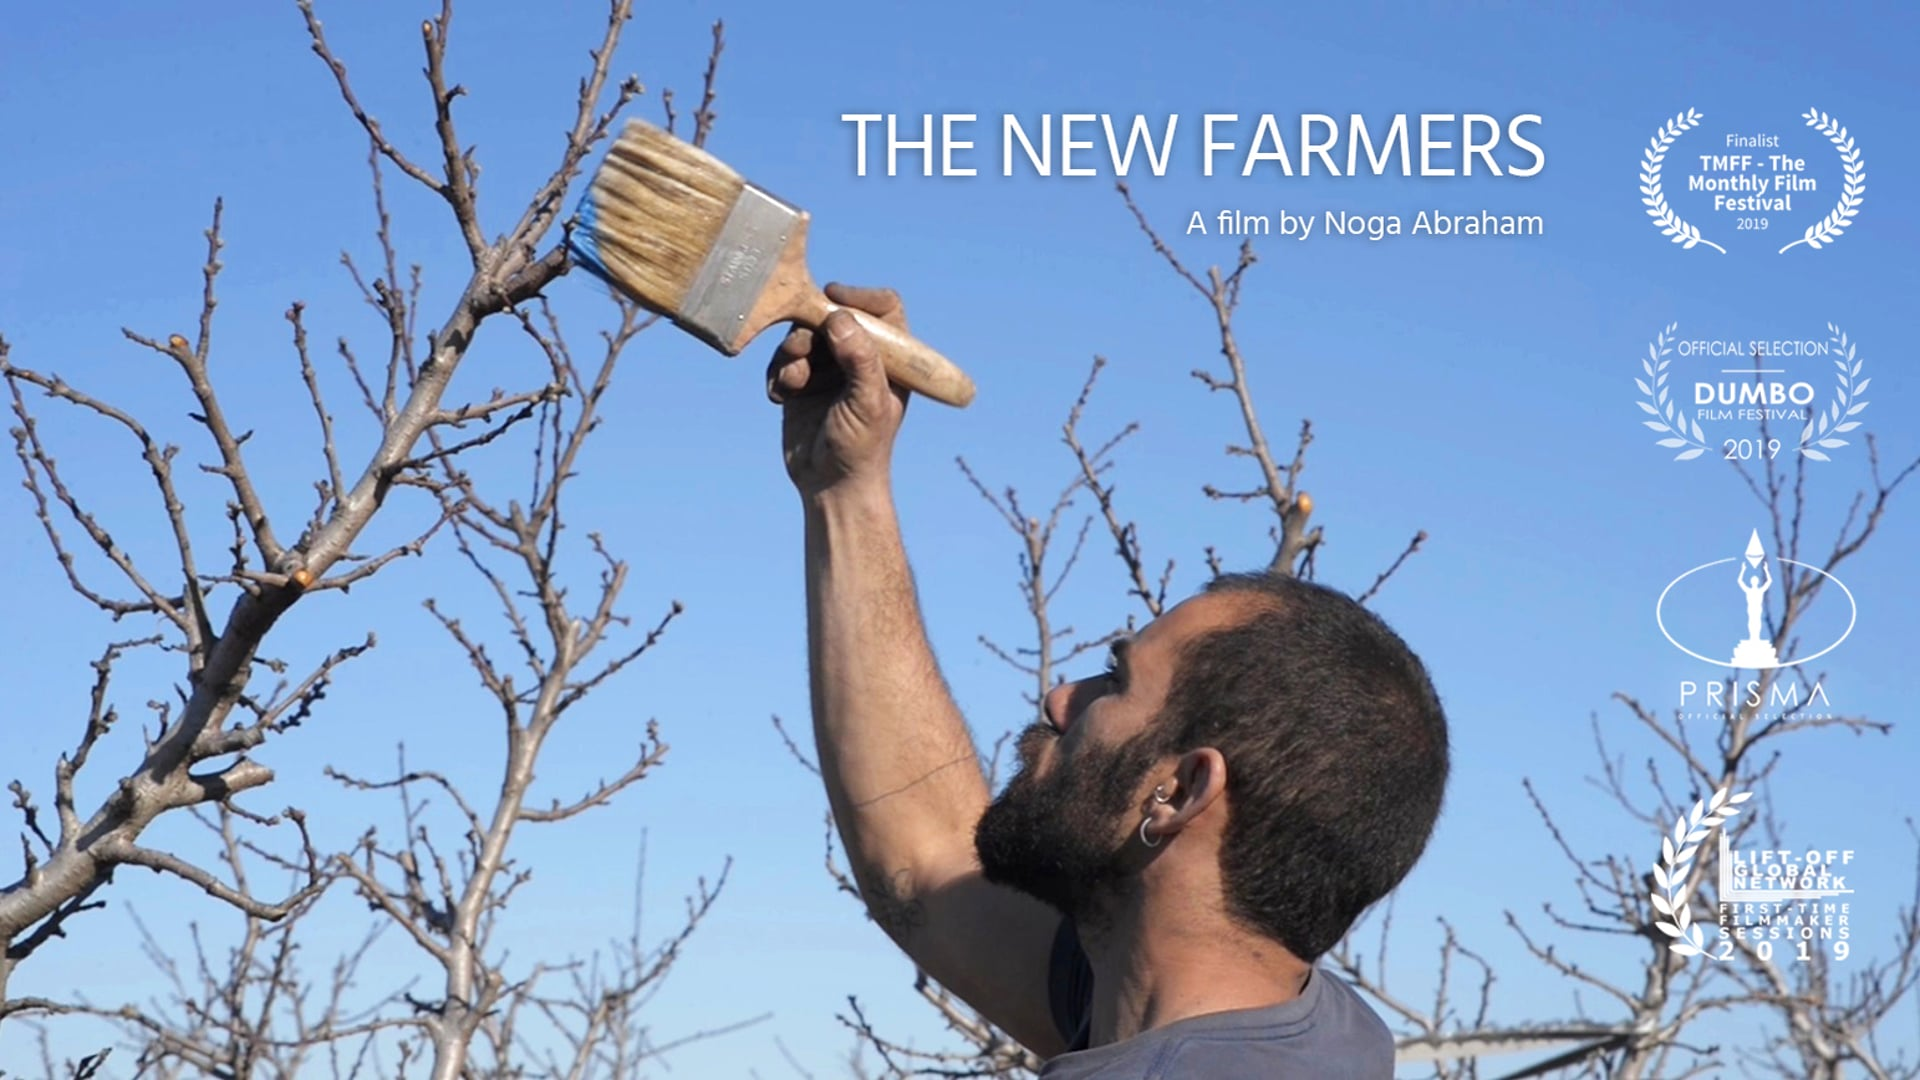 The New Farmers